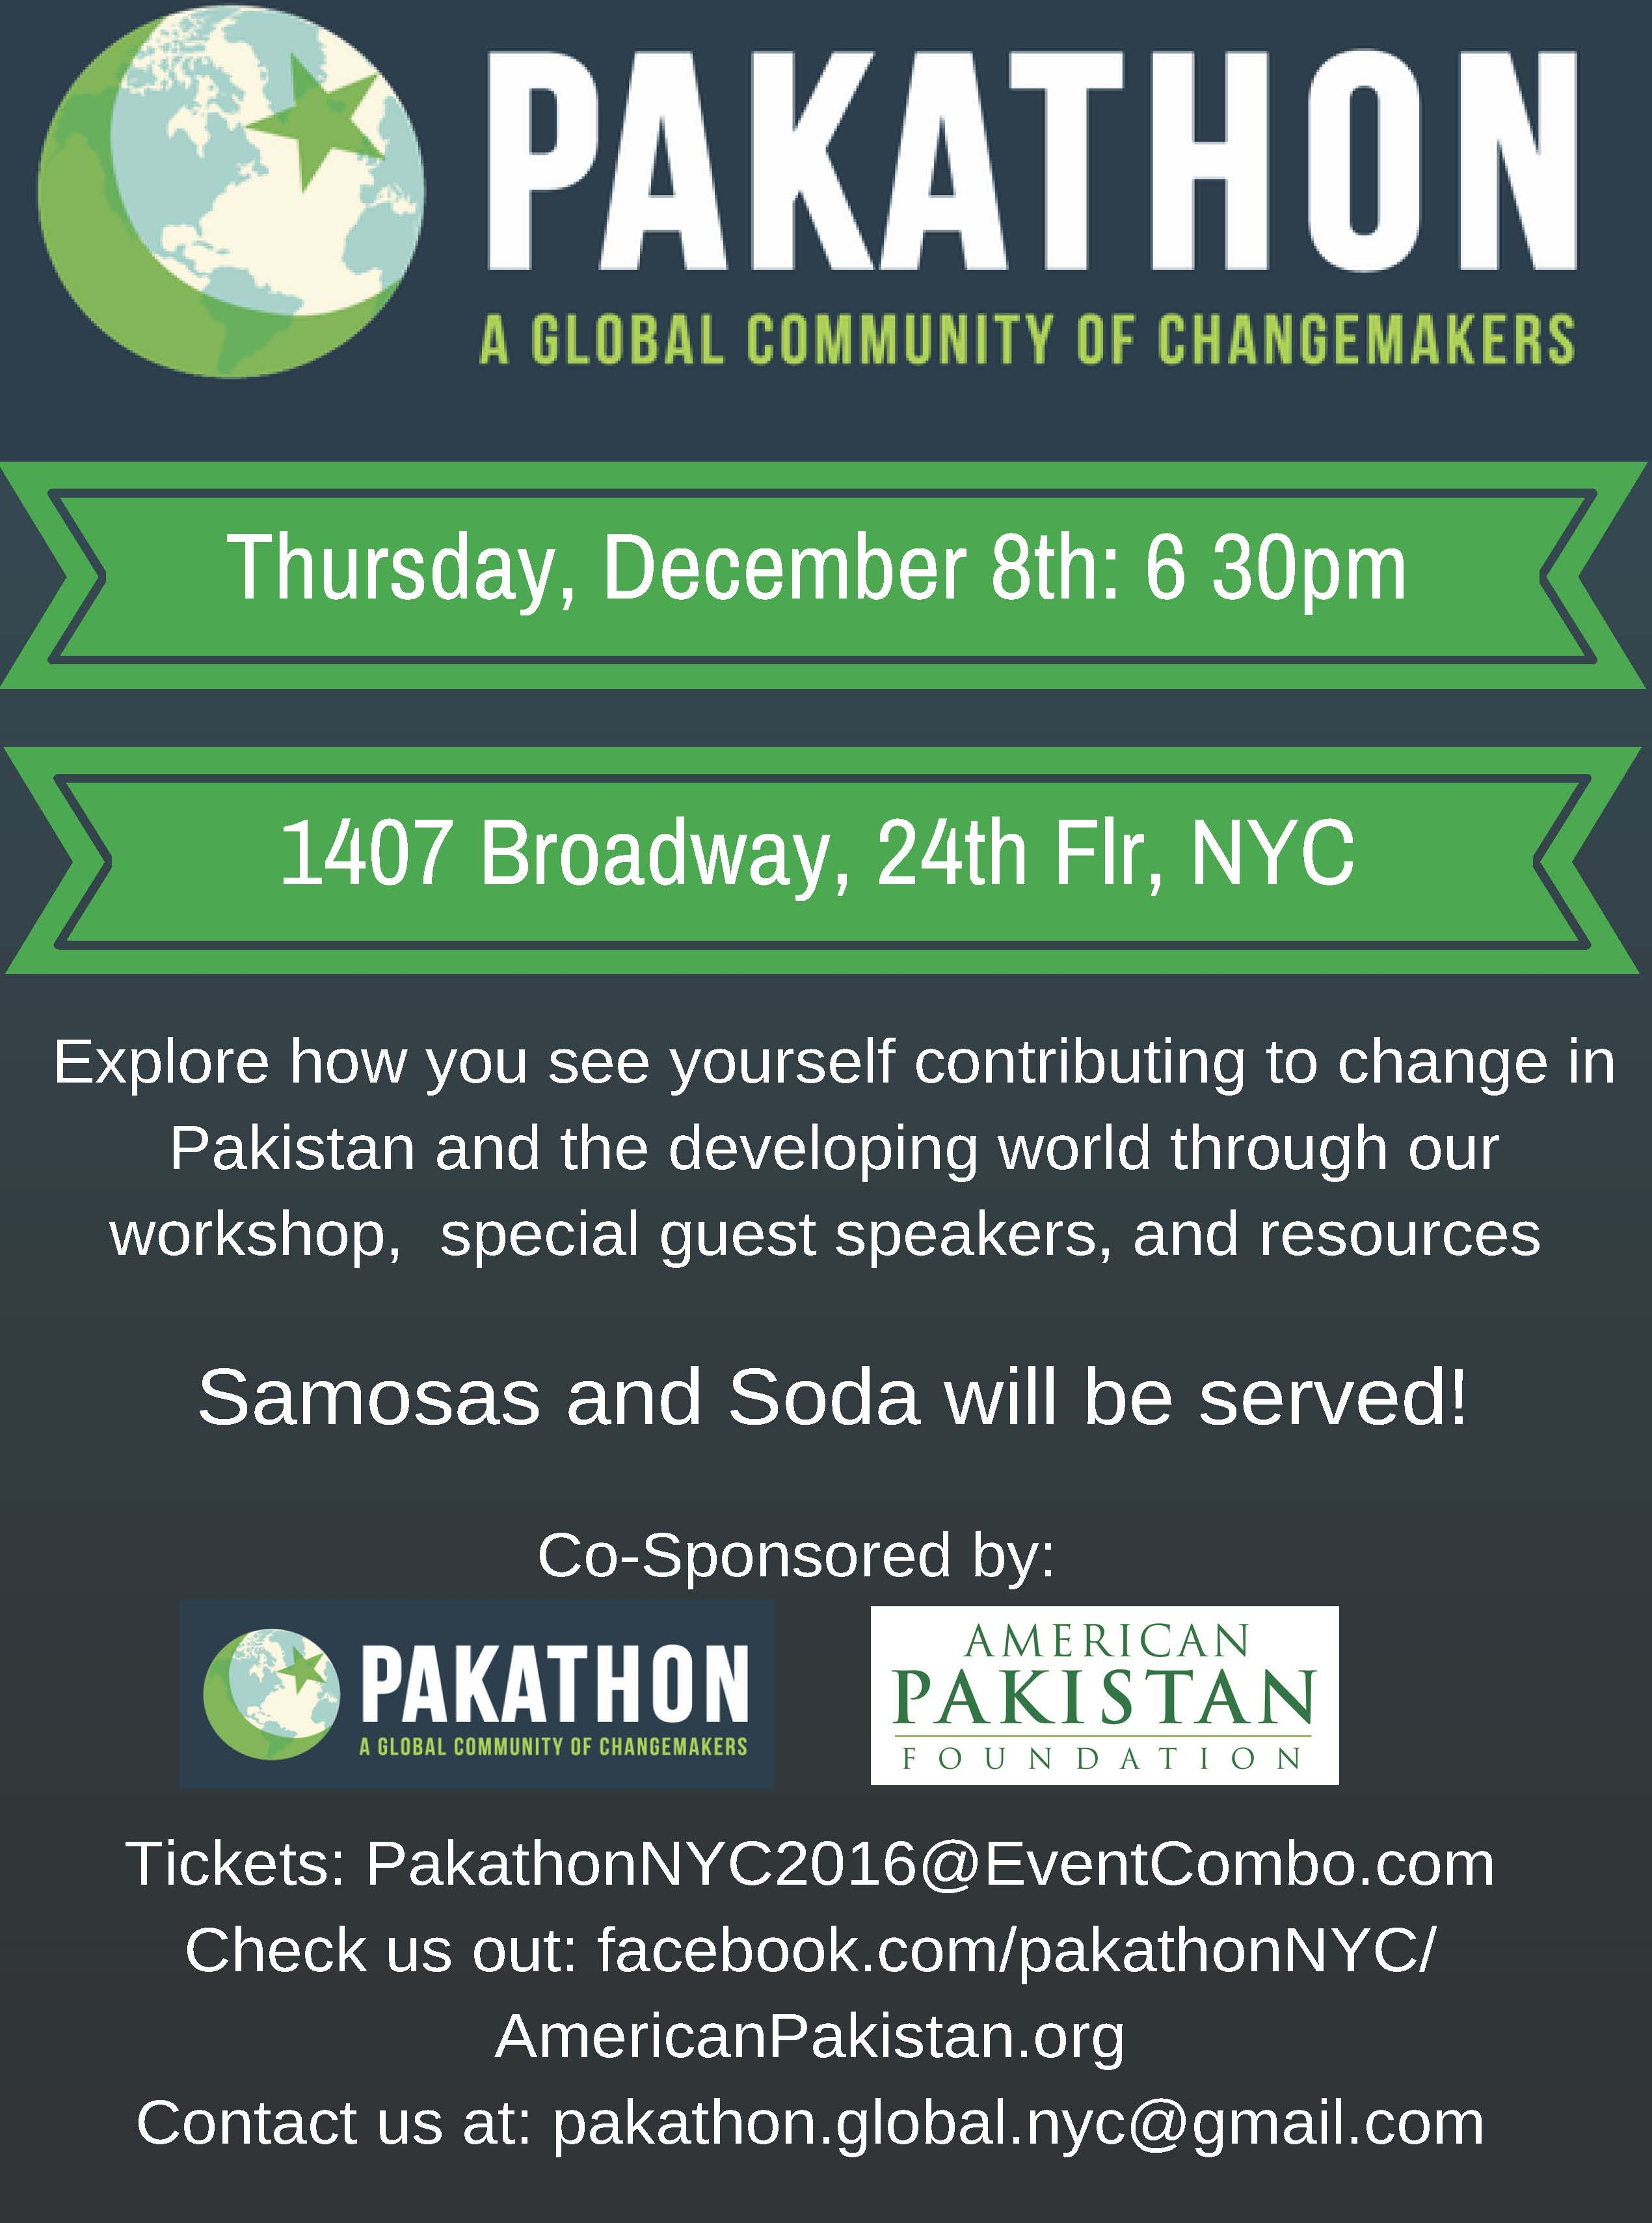 Pakathon in NYC: Creating a Community of Change-Makers. Come, Network, Exchange Ideas, Grow